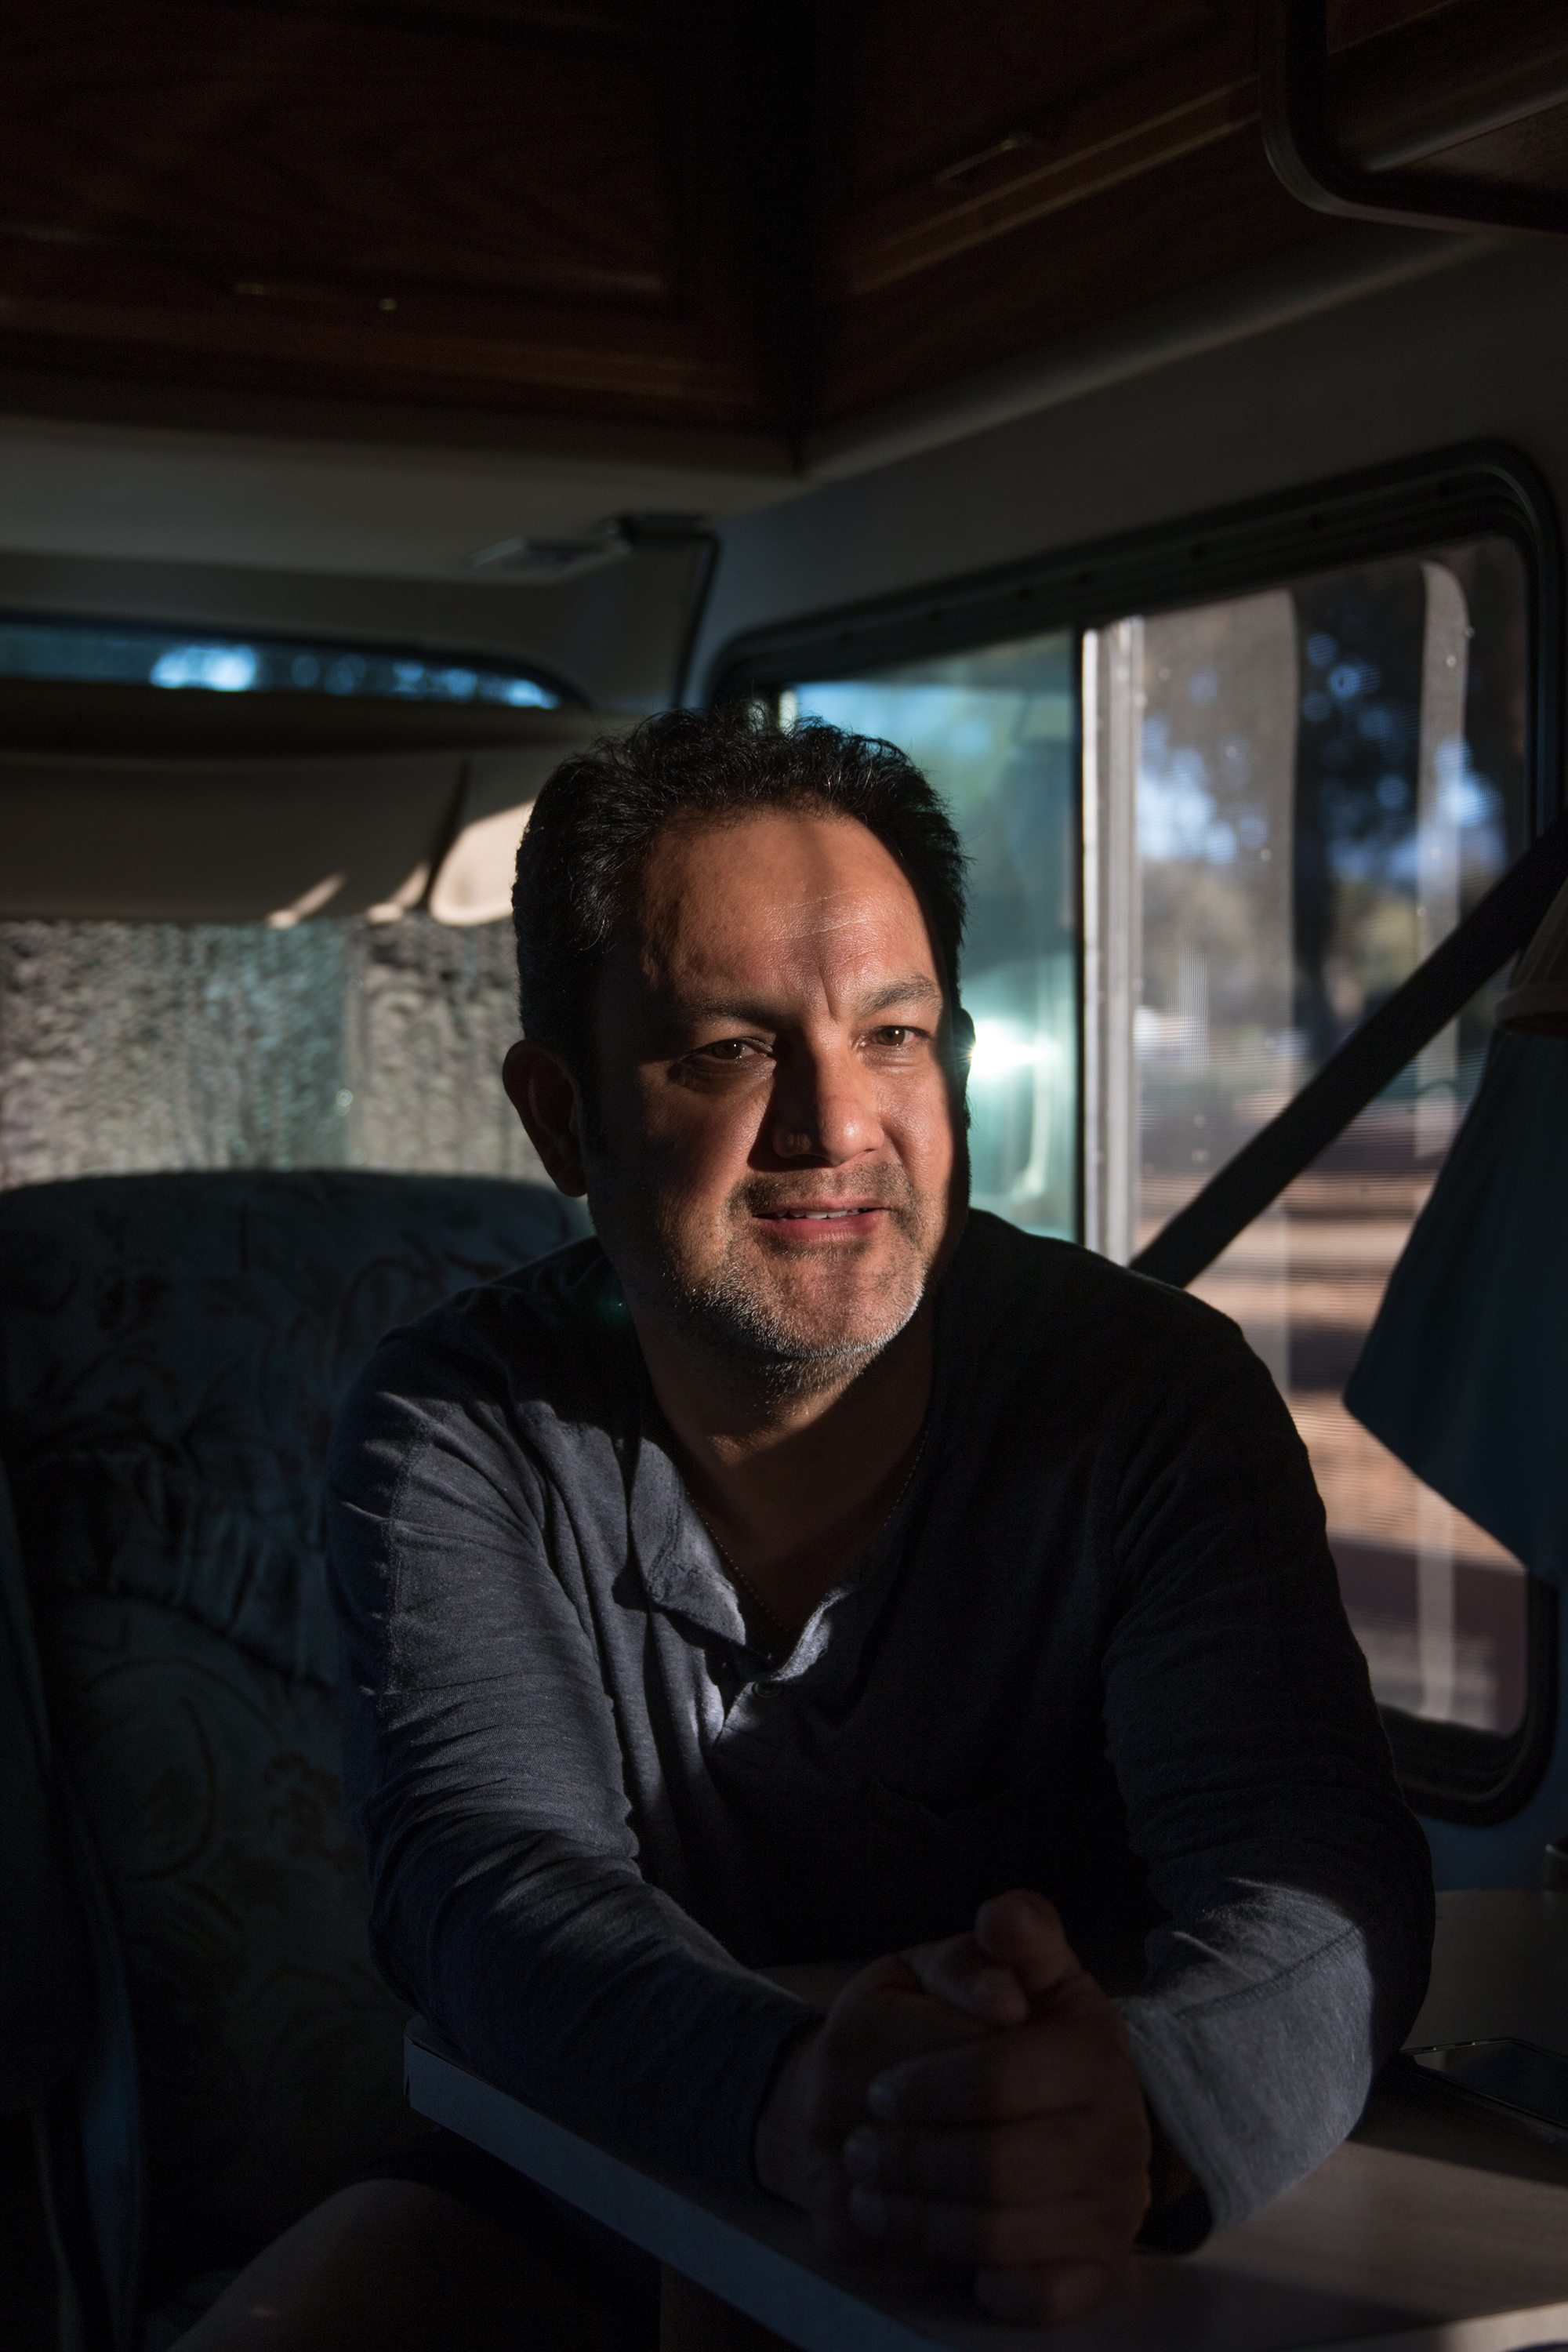 Arturo Torres, 48, sits in his RV parked on El Camino Real. He works eight to 12 hours Monday through Friday on numerous construction projects in Silicon Valley, including at Apple, Facebook and in Stanford Research Park.